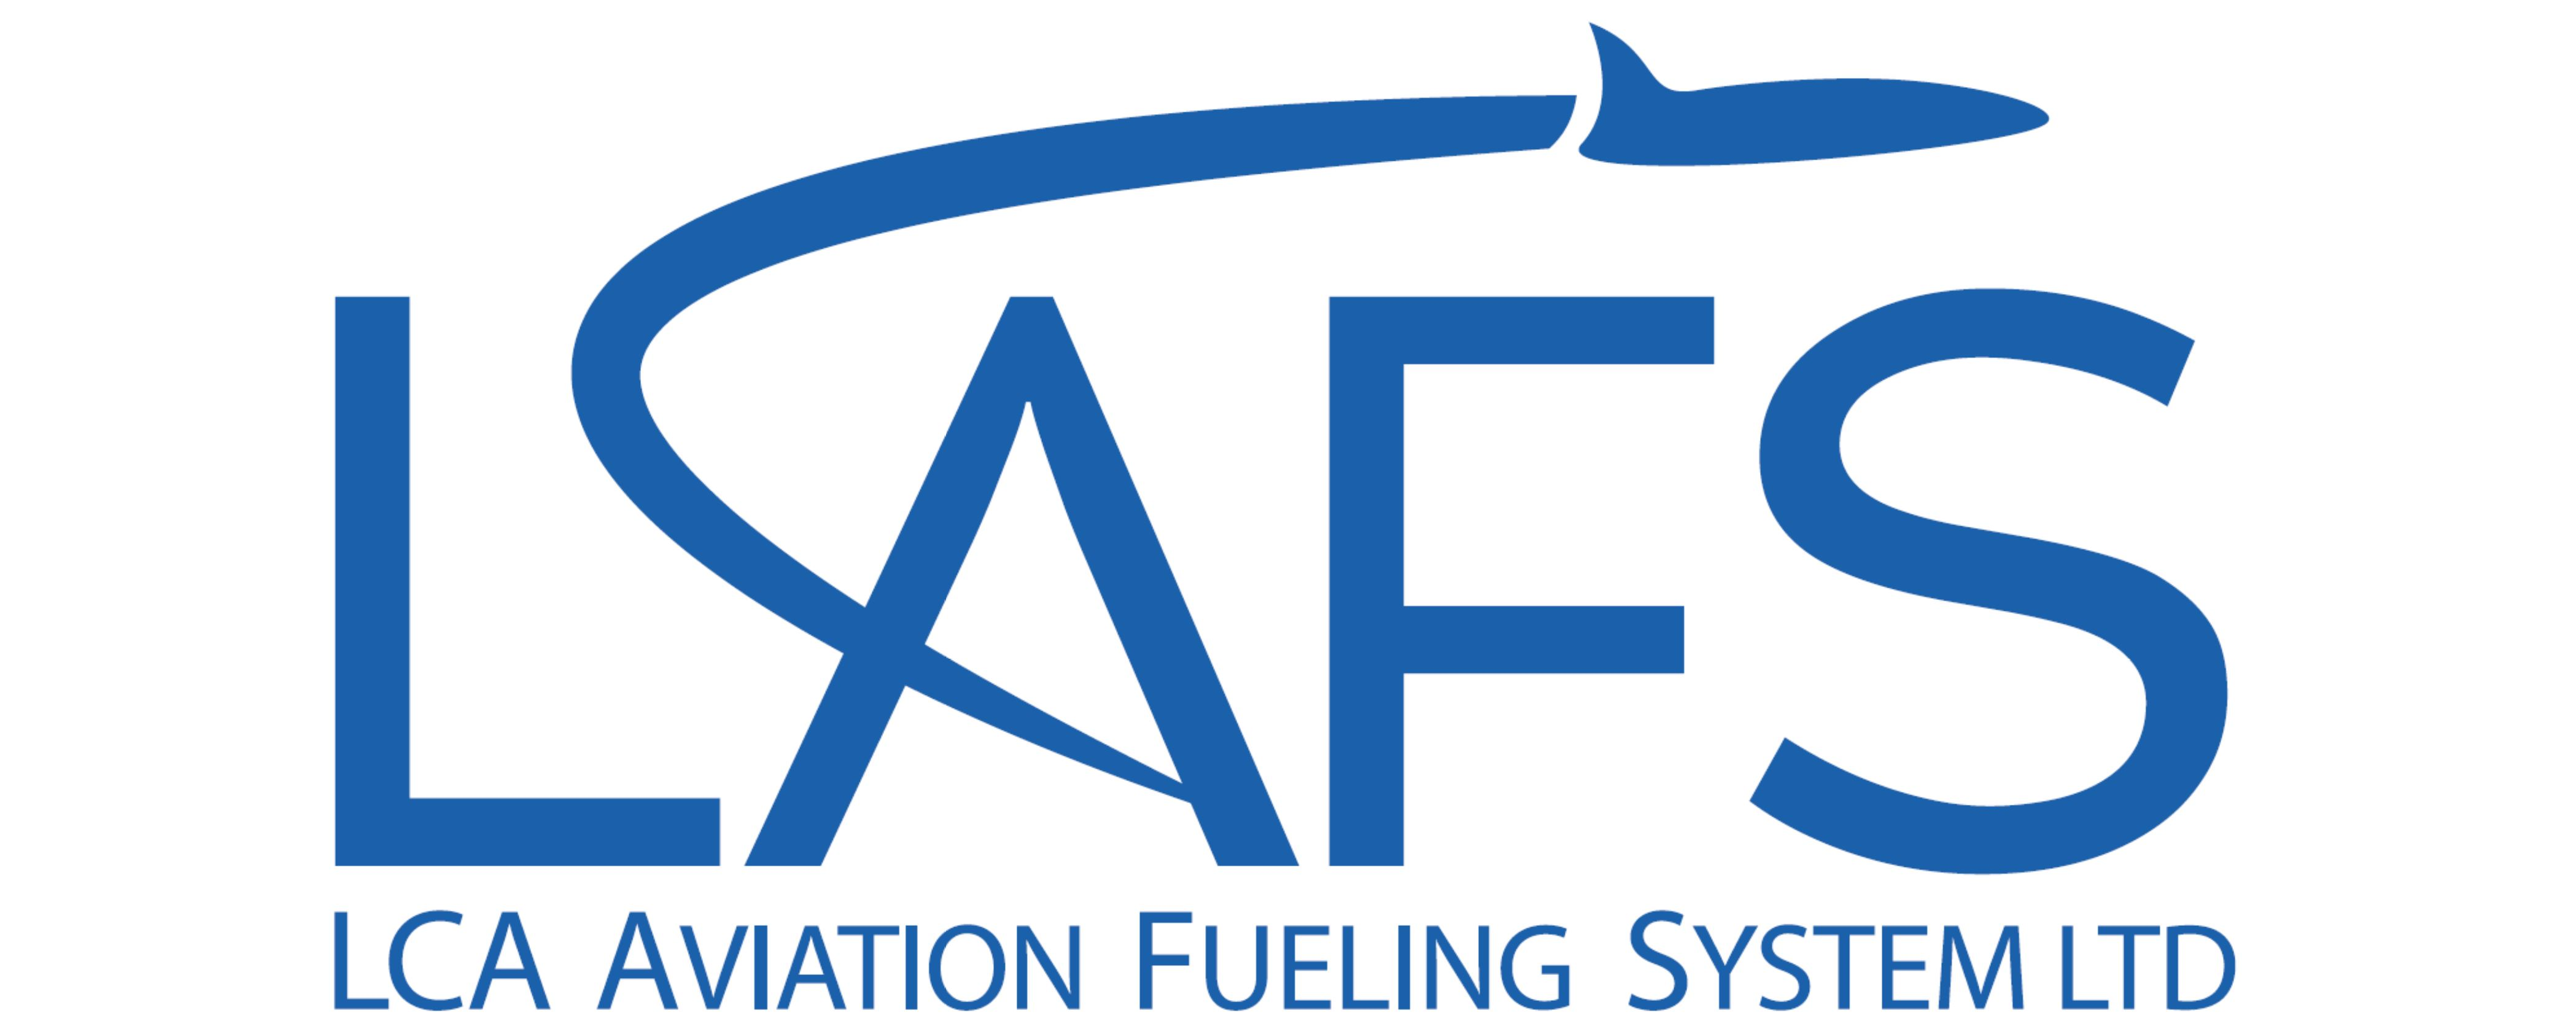 LCA Aviation Fueling System Ltd